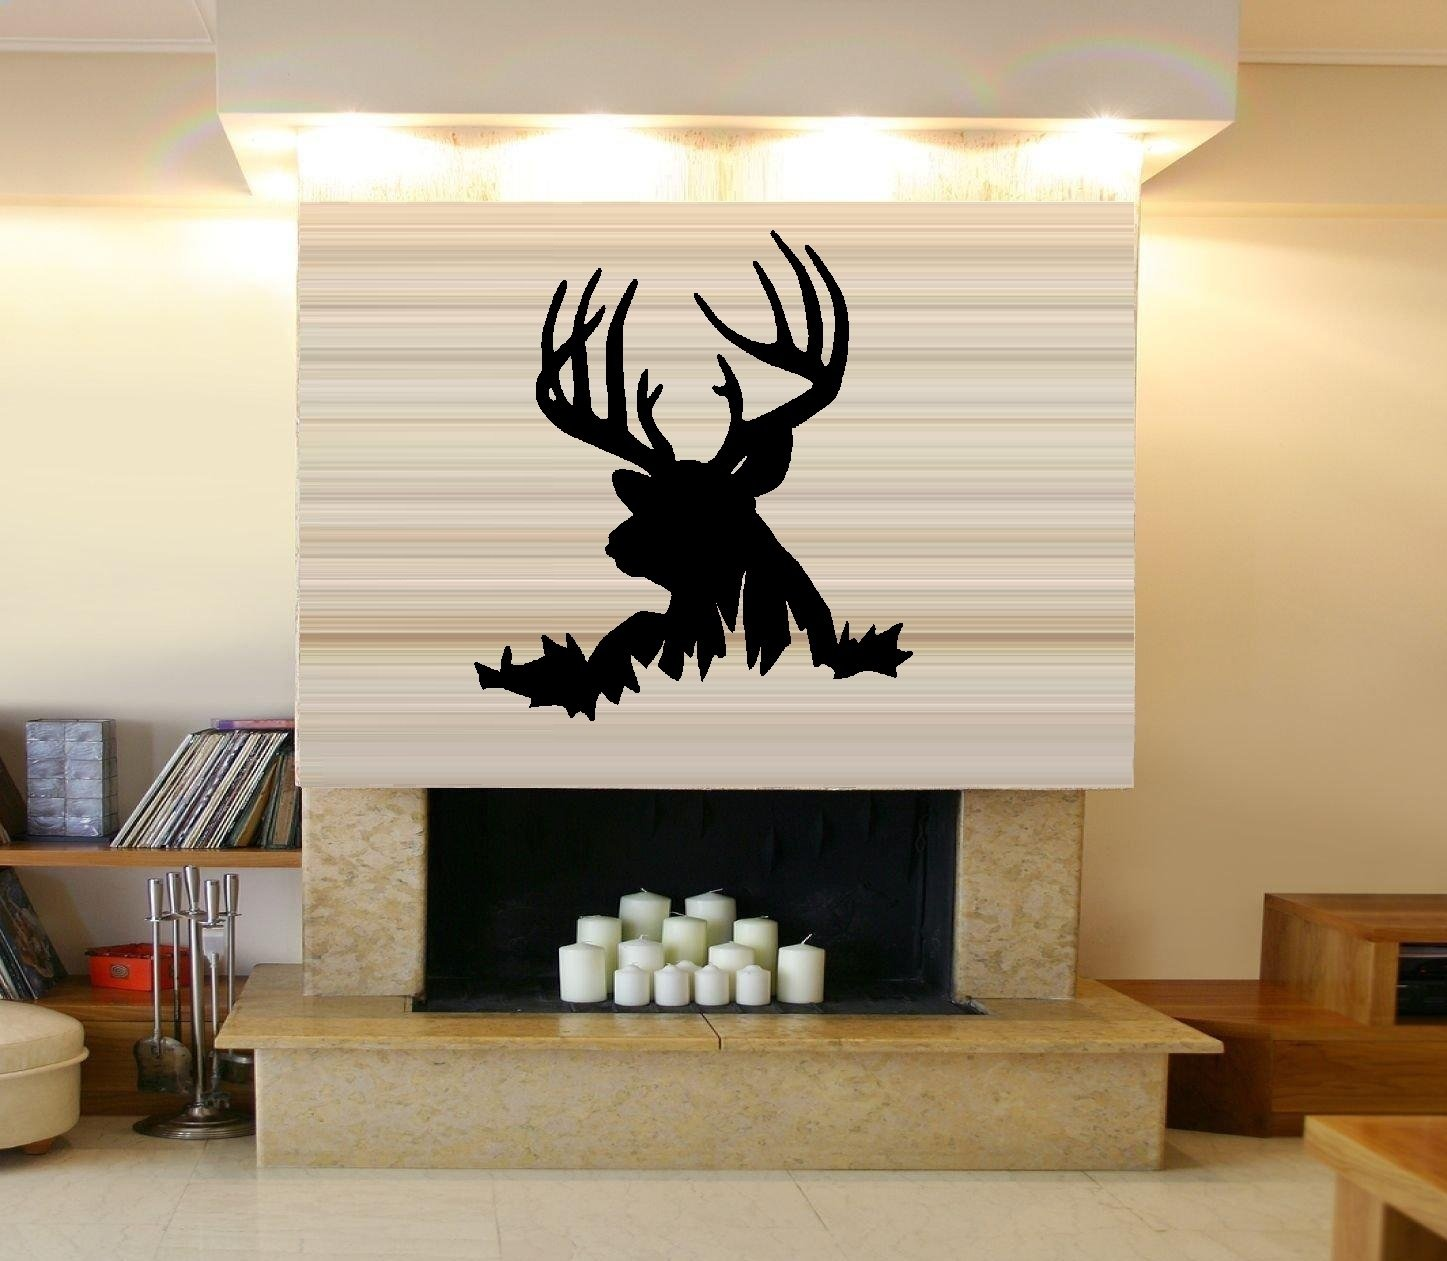 Buck deer head wall decal home decor 21 x 215 other buck deer head wall decal home decor 21 x 215 other products amazon amipublicfo Gallery